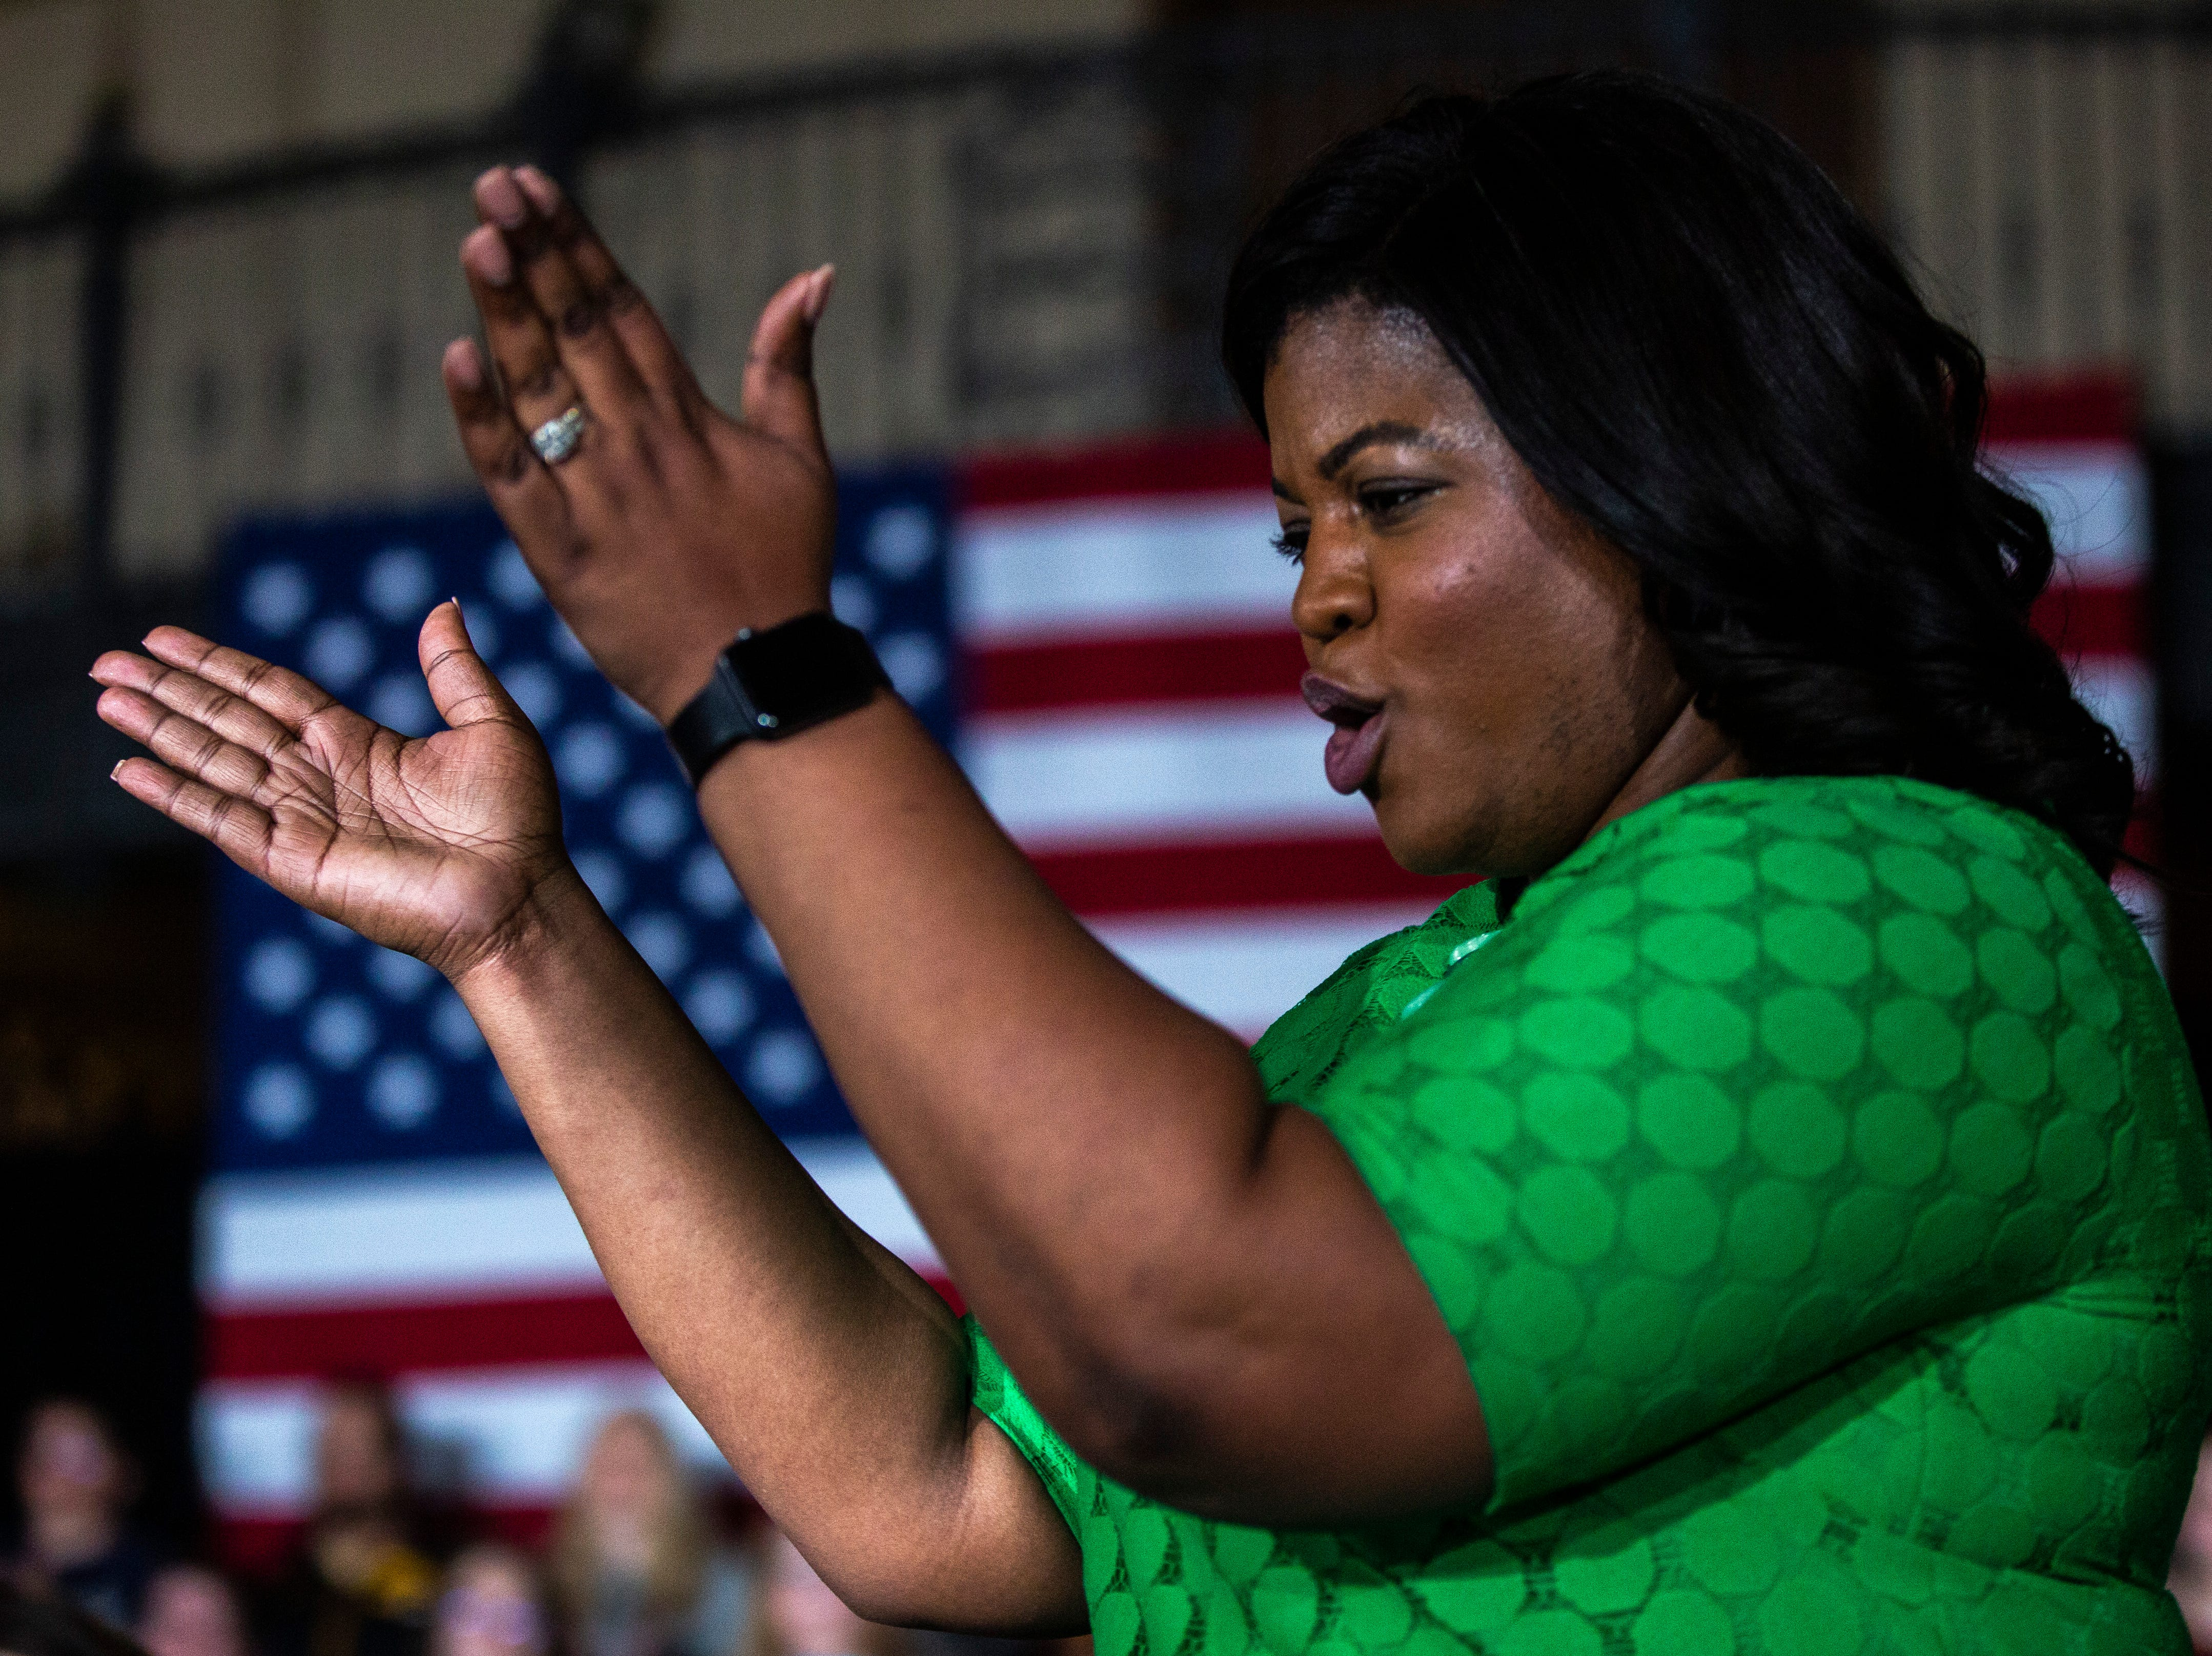 Deidre DeJear claps while walking up on stage during a town hall event on Wednesday, April 10, 2019, at the Iowa Memorial Union main lounge in Iowa City, Iowa.